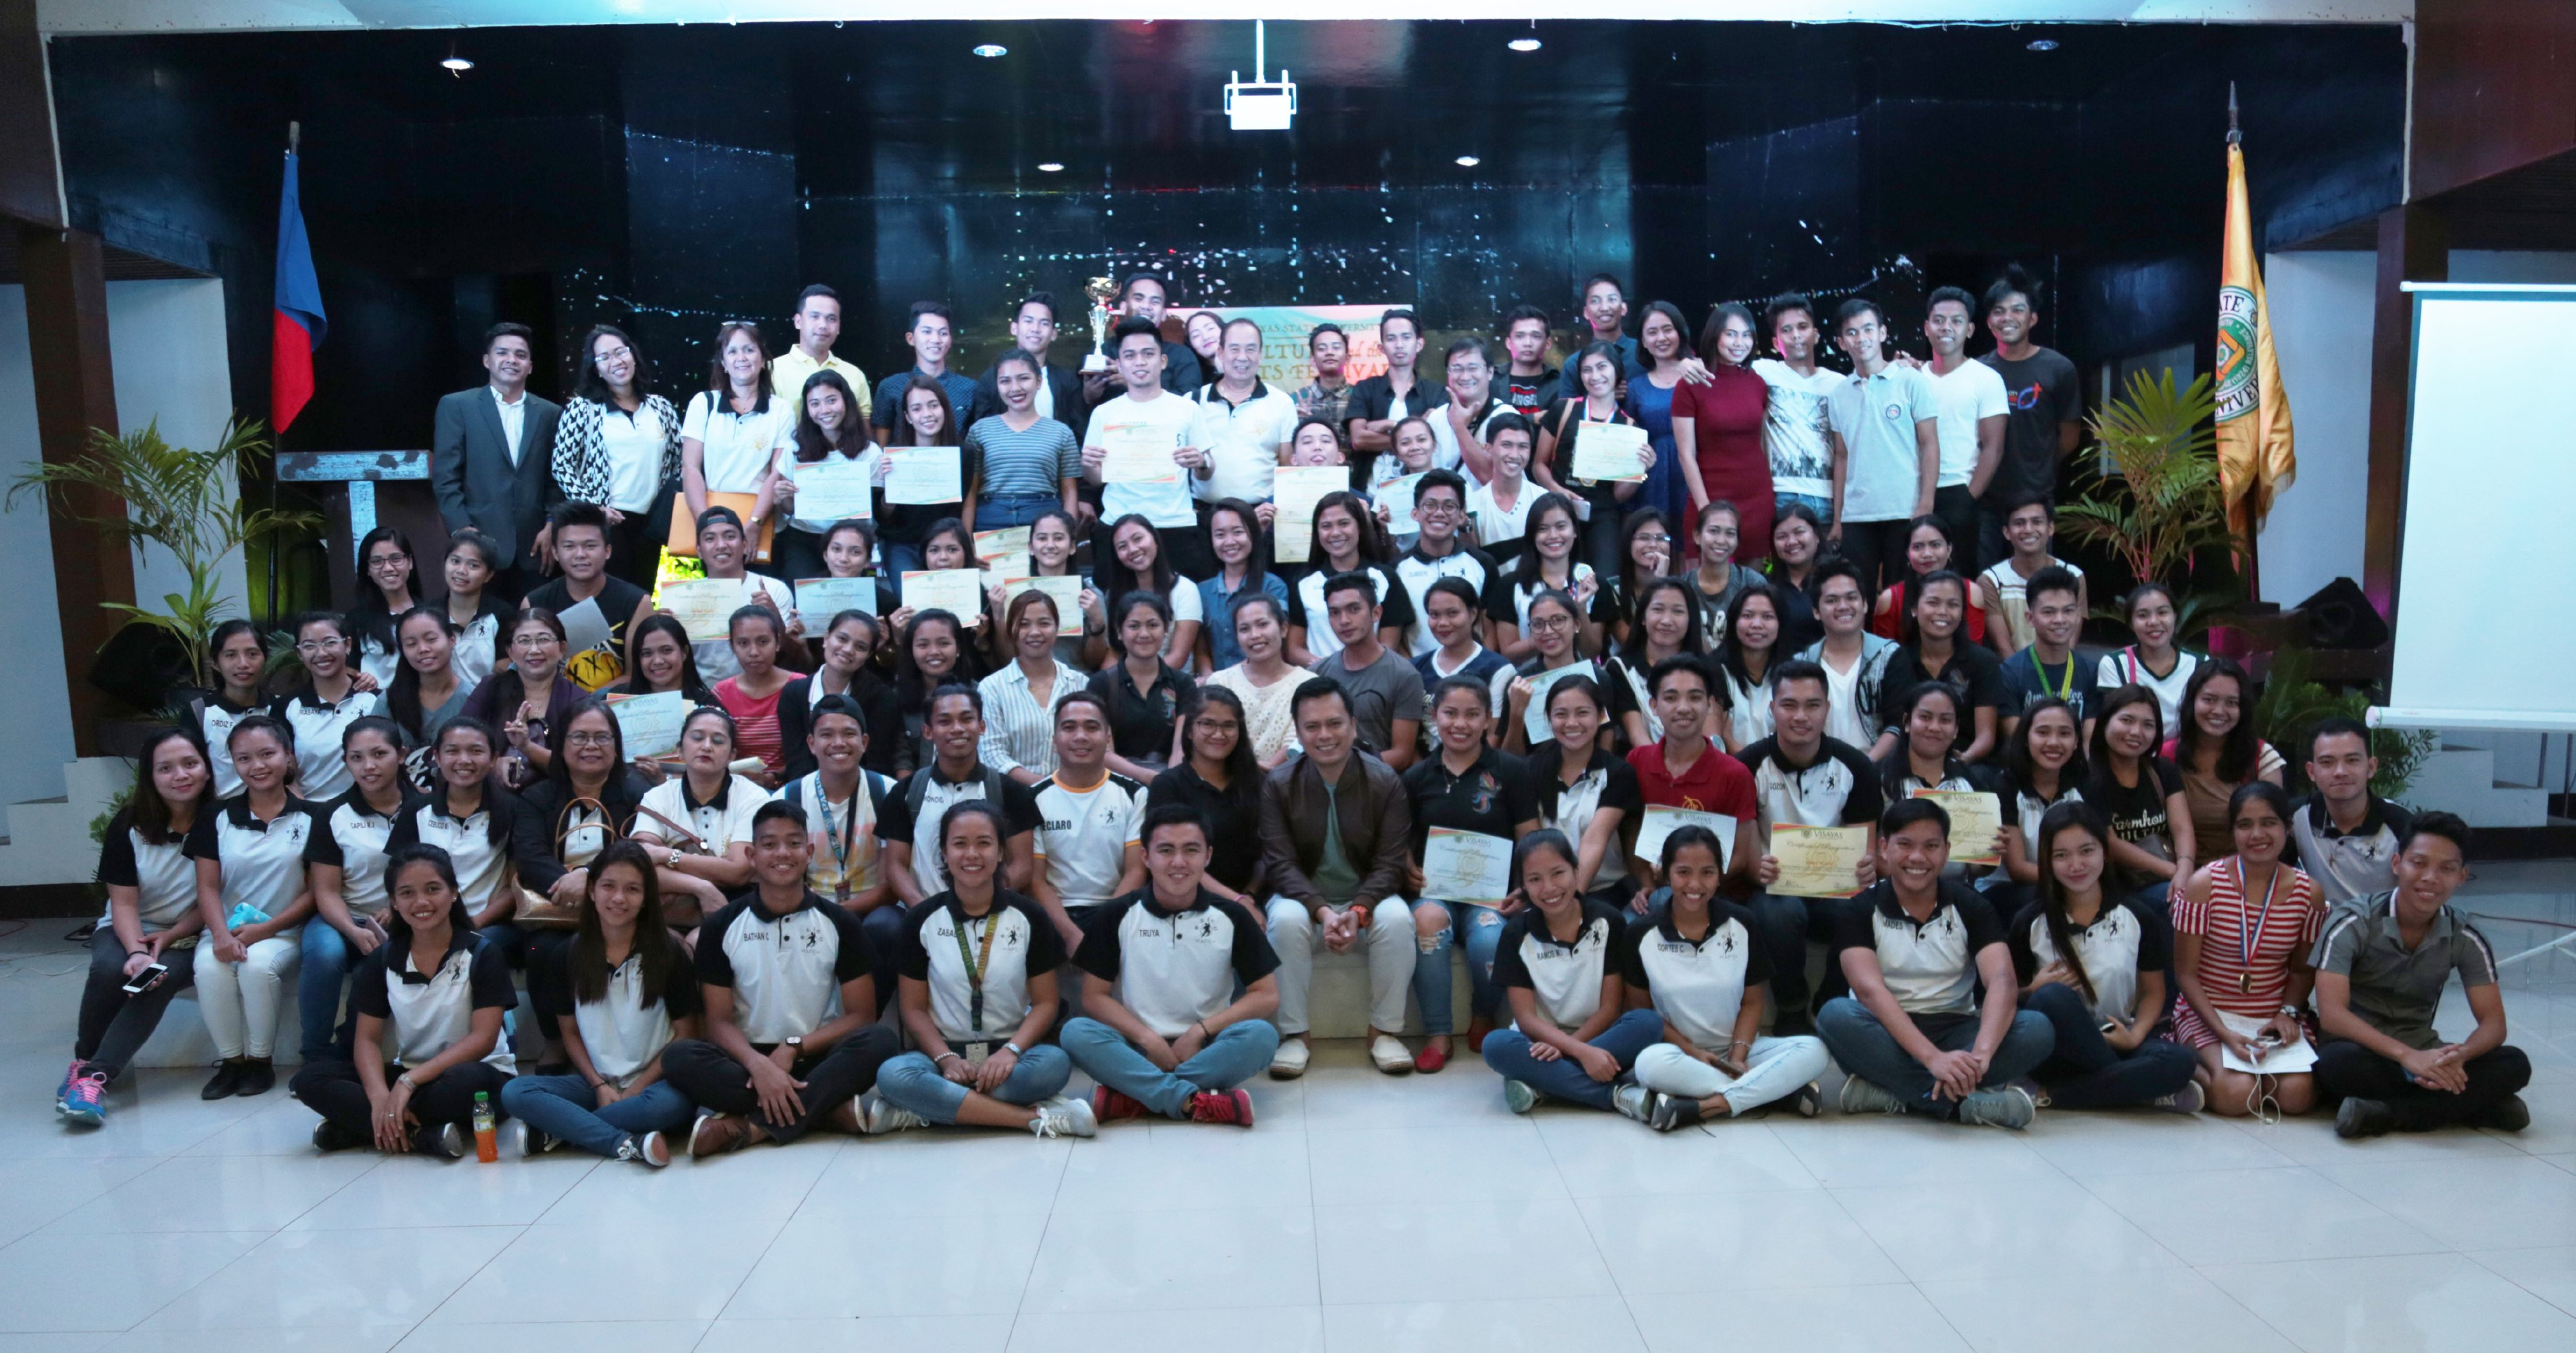 CULTURE & ARTS. Professor Jesusito Lim, Head of the VSU Culture and the Arts Center, with the working committees and contestants of the 2nd Culture and Arts Festival.